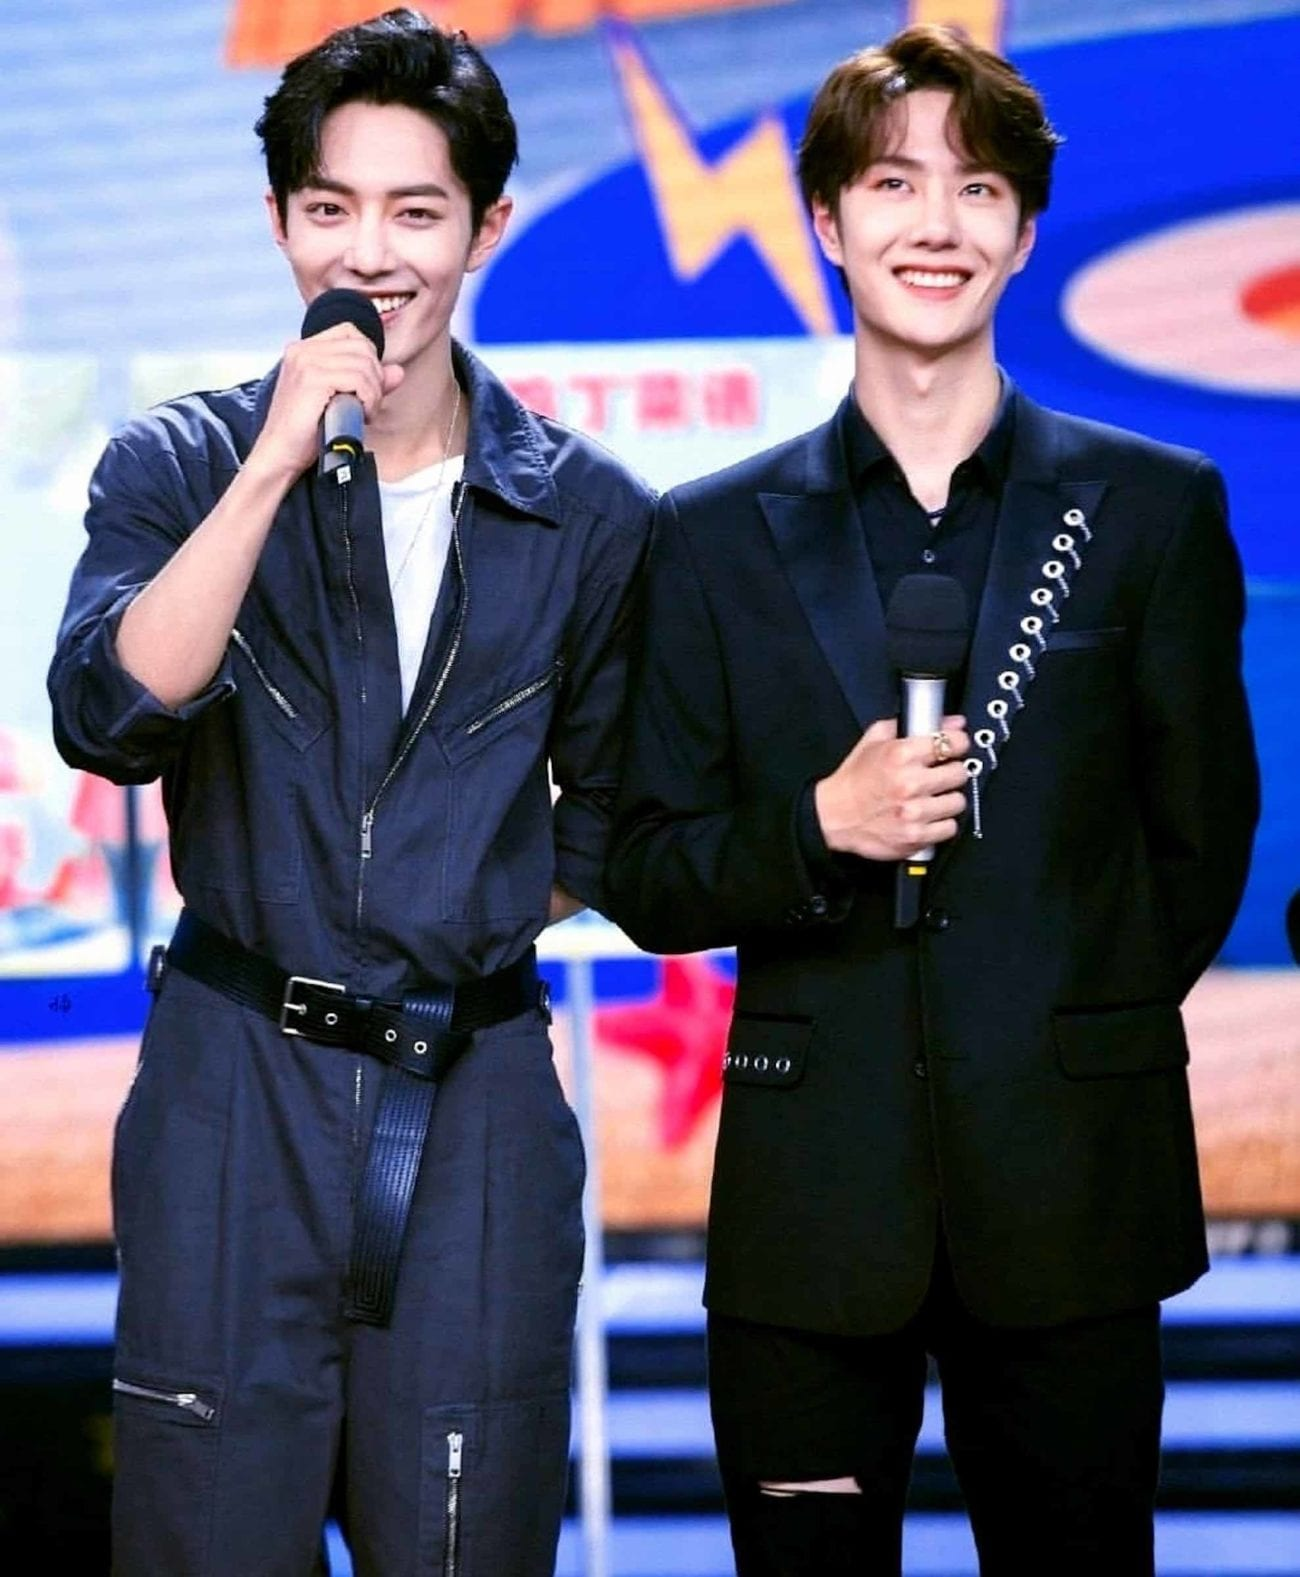 Wang Yibo brought his co-star, Xiao Zhan to 'Day Day Up' to promote 'The Untamed. Come with us as we review this very special episode of 'Day Day Up'.